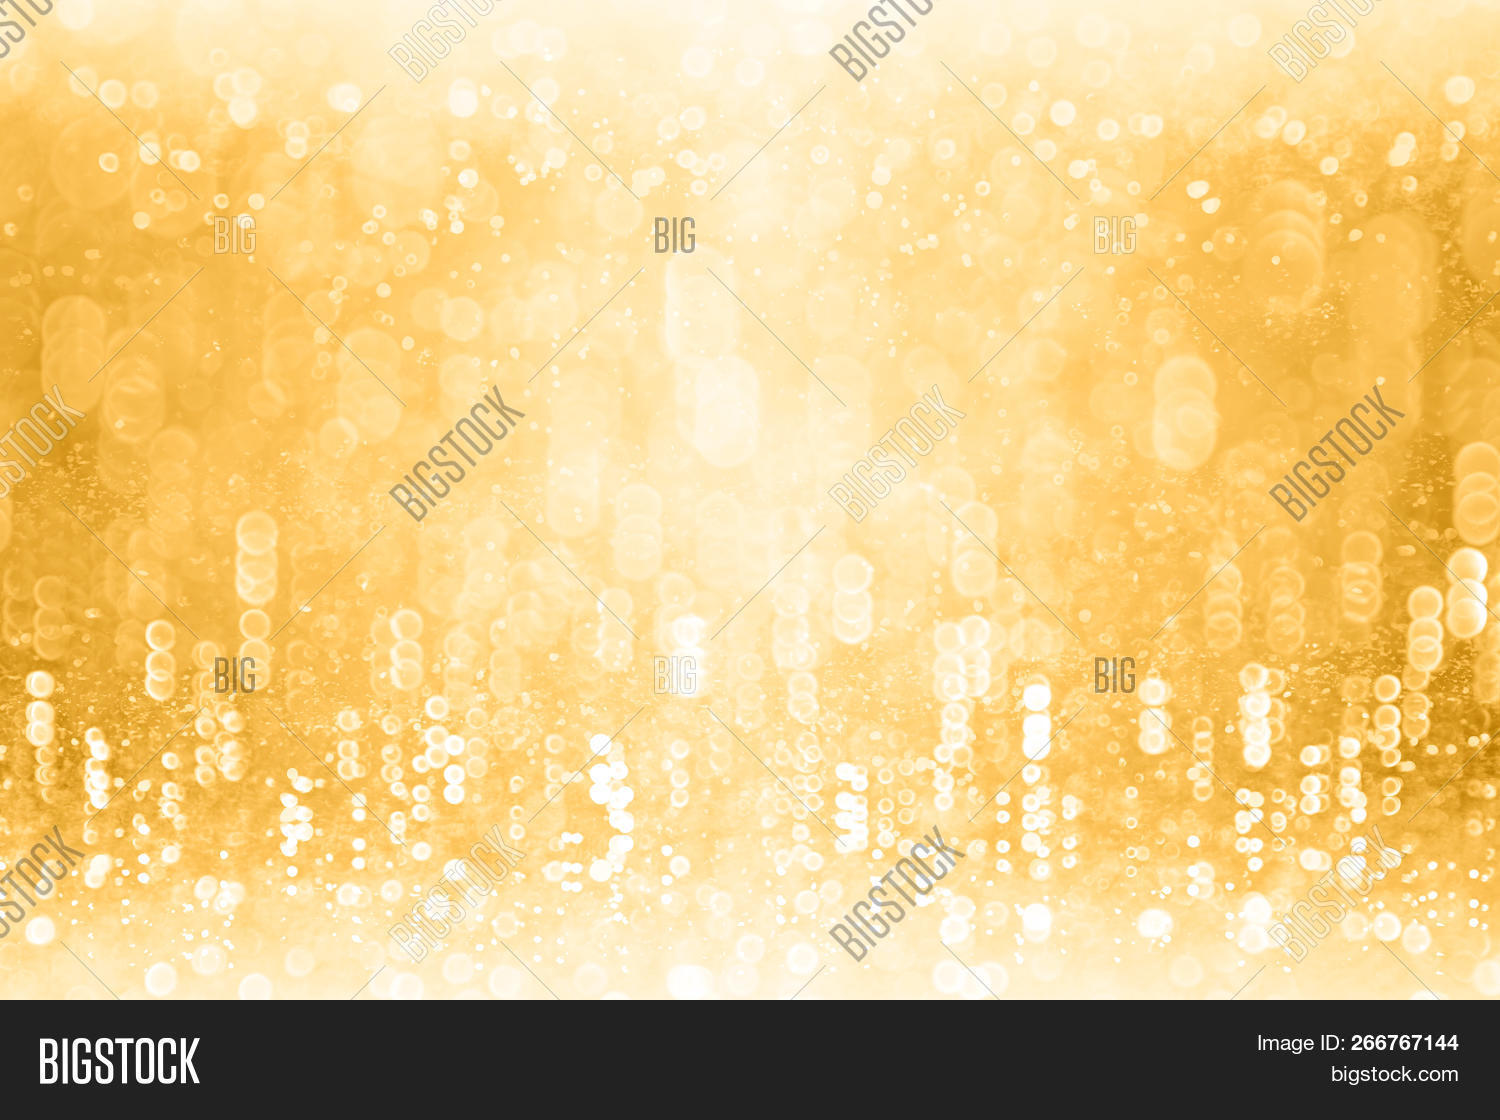 50,50th,abstract,anniversary,background,backround,birthday,bling,blurred,bridal,bubble,champagne,champaign,champange,chirstmas,christmas,club,confetti,dance,elegant,eve,falling,fancy,glam,gliter,glitter,glittery,gold,golden,happy,invitation,invite,karaoke,light,music,new,party,pattern,perfume,s,sale,sparkle,sparkling,sparks,texture,texure,wedding,winner,xmass,year